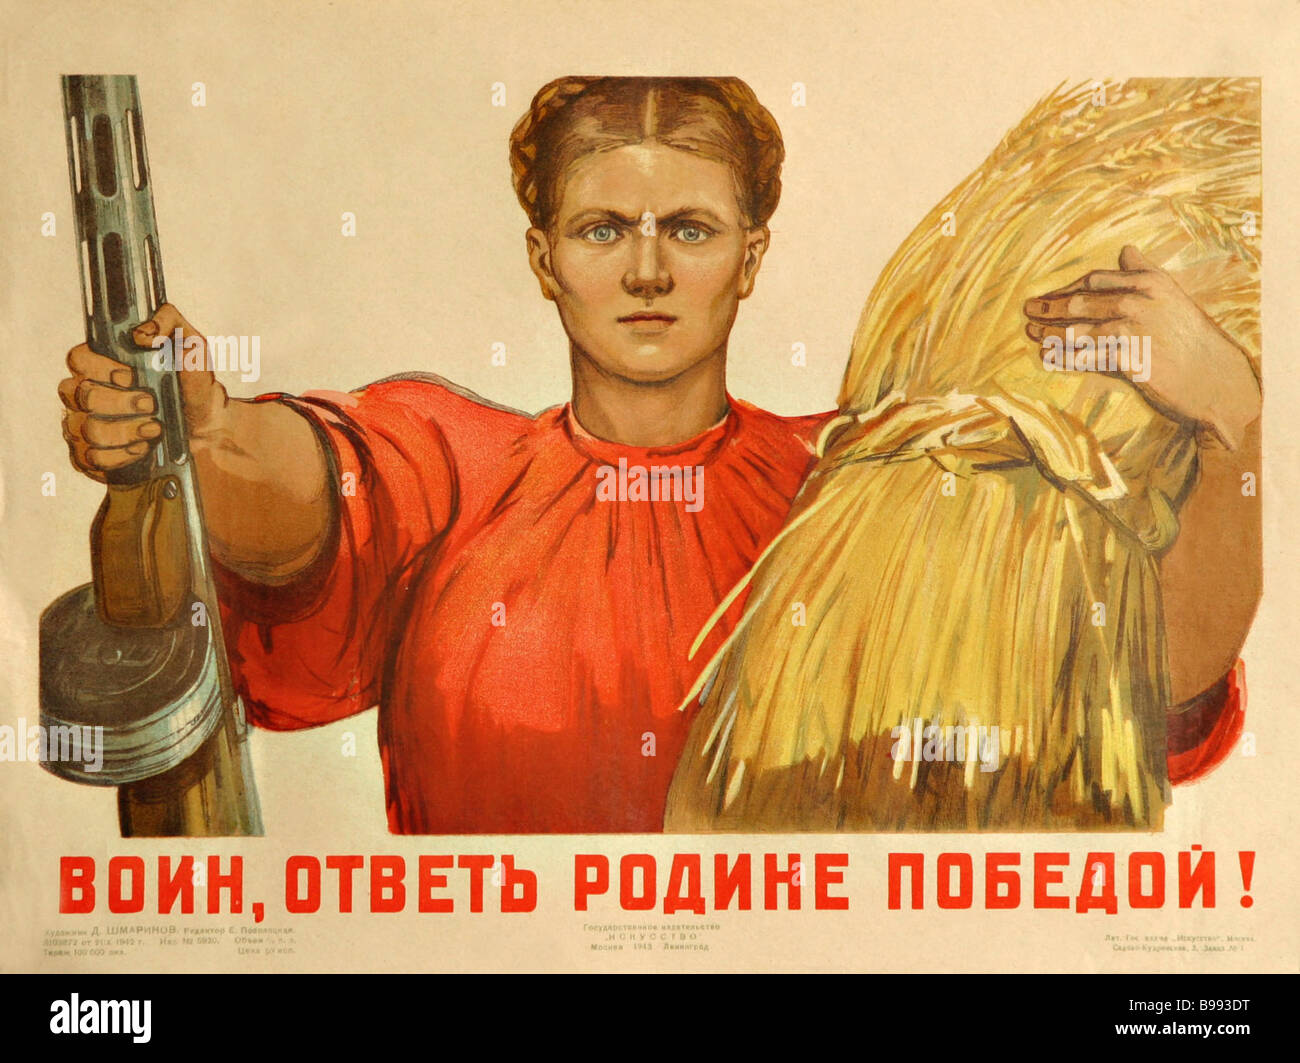 Dementy Shmarinov Soldier pay back to Motherland with victory Poster 1941 - Stock Image